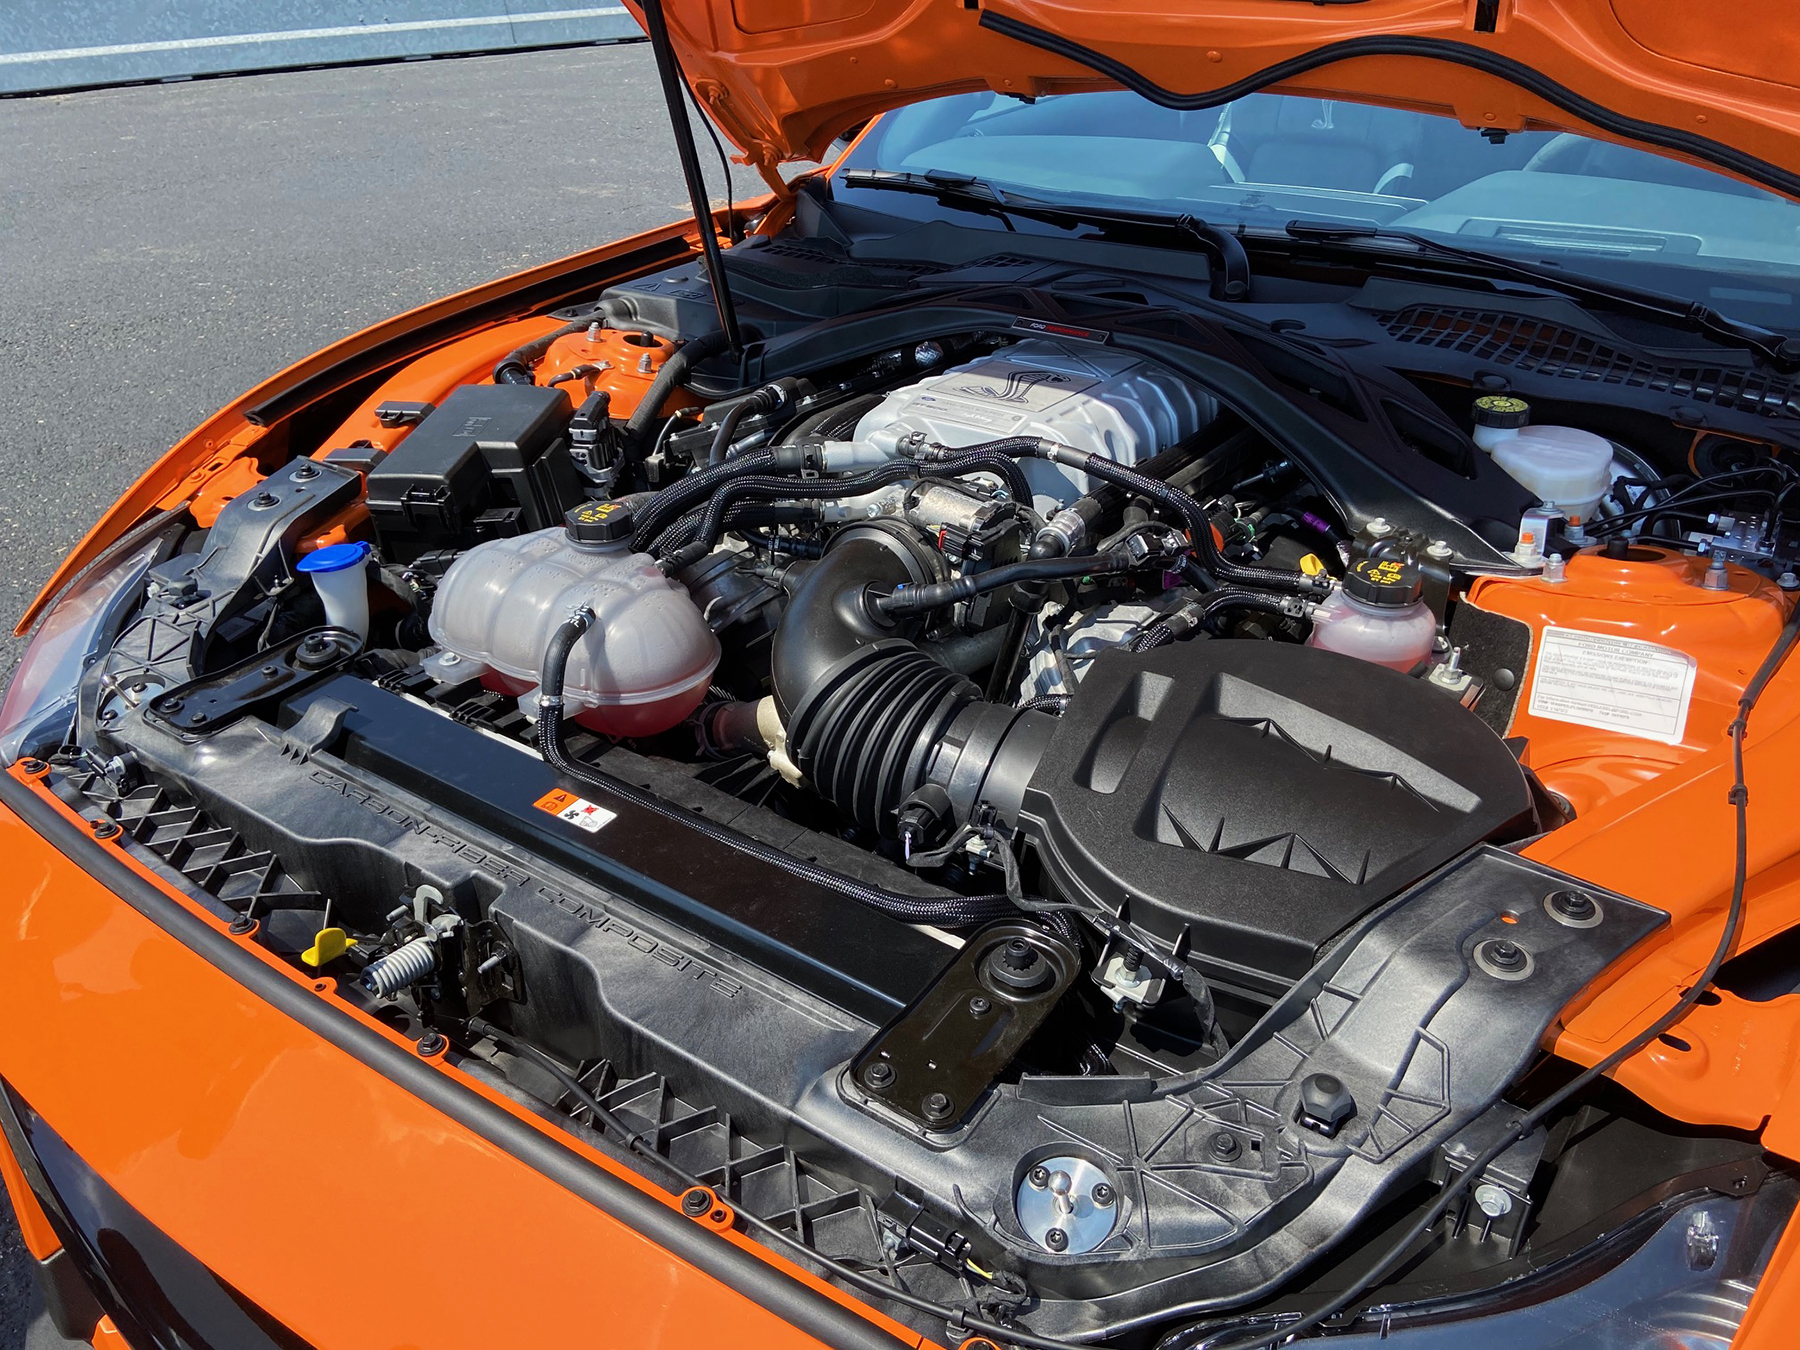 A 5.2-liter supercharged V8 with twin overhead camshafts produces 760 horsepower at 7300 rpm and 625 lb-ft of torque at 5000 rpm. It's an engine that will pull like an overzealous dentist to the 7500-rev redline and deliver a claimed top speed of 180 mph. Where the naturally aspirated 5.2 in the 526-horse Shelby GT350 uses a flat-plane crankshaft, the GT500 engine employs a cross-plane crank that reduces vibration.